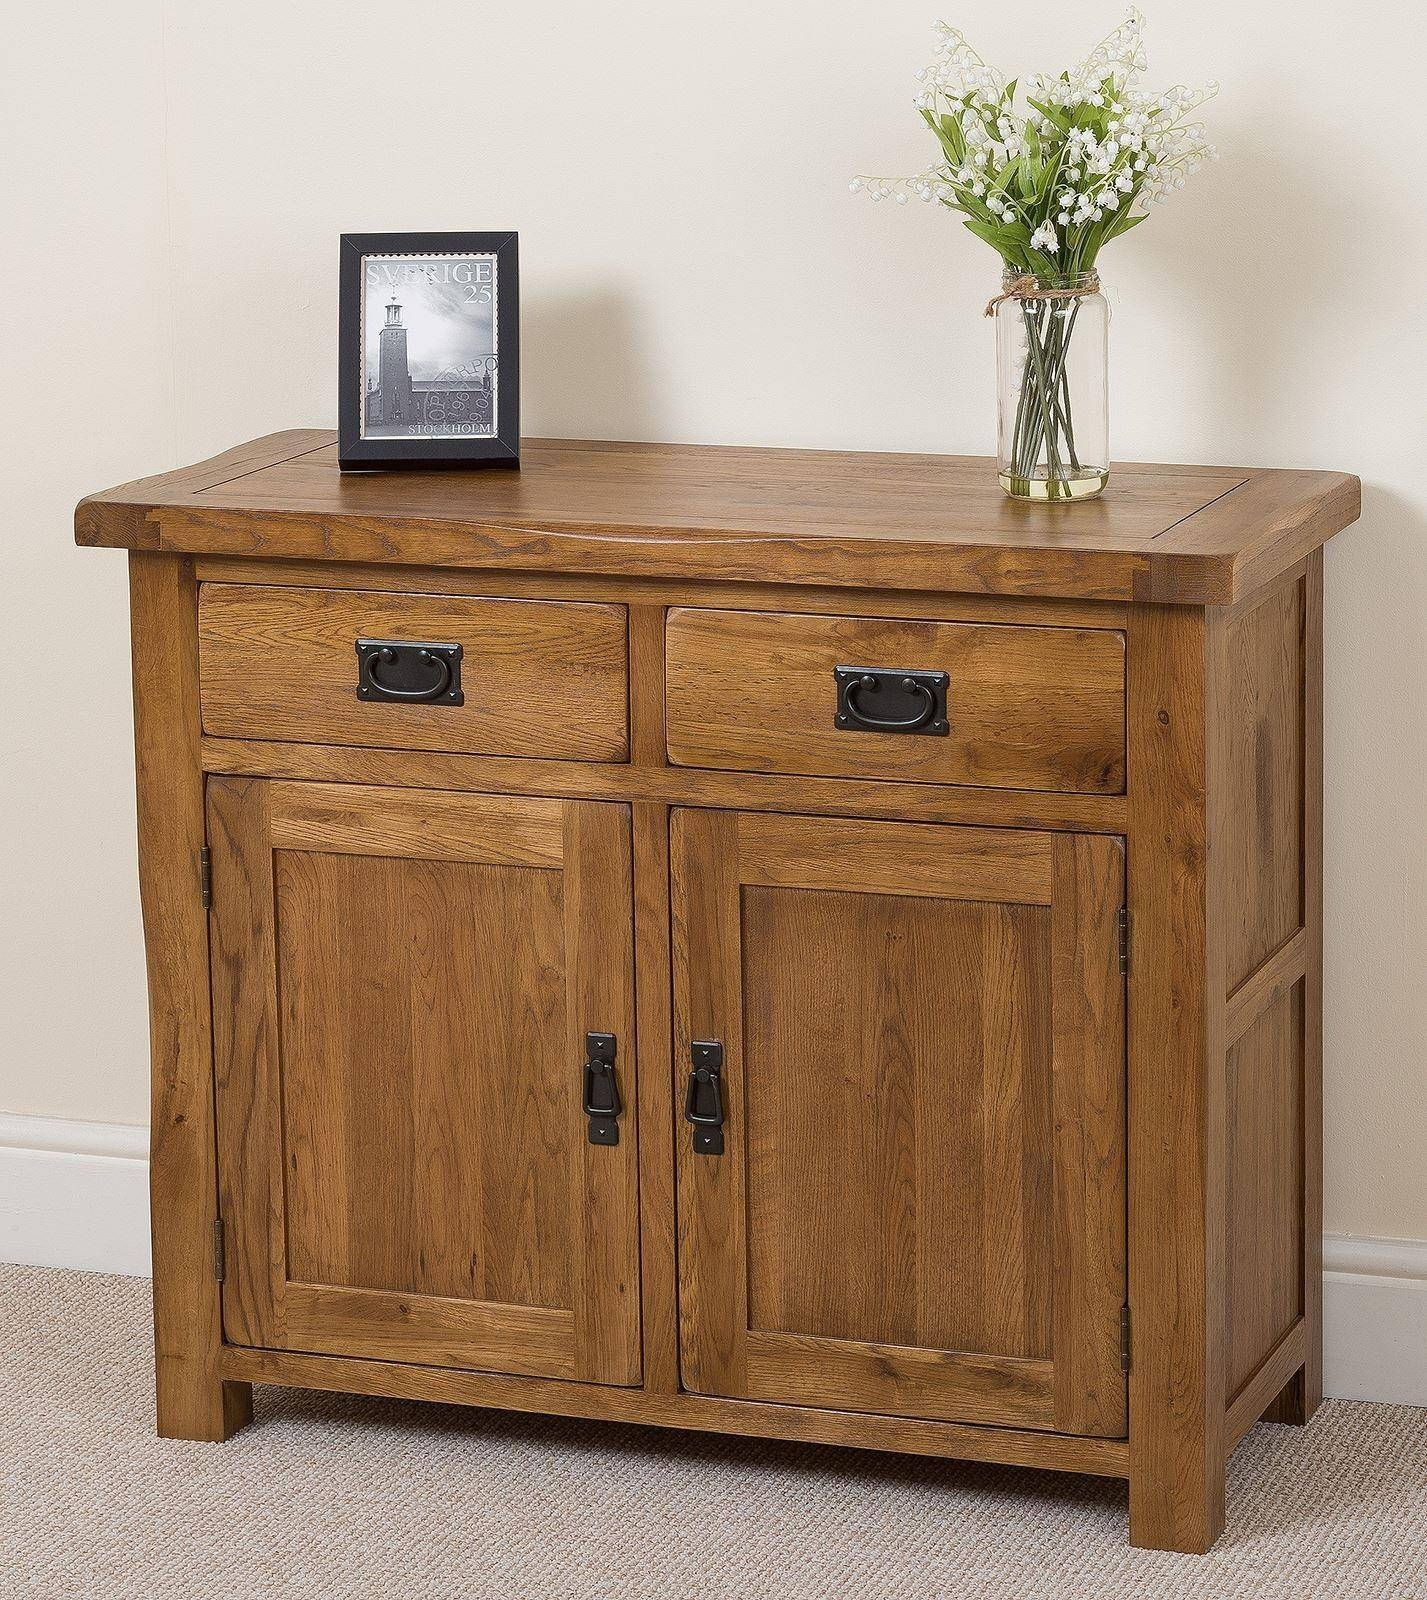 Cotswold Rustic Oak Small Sideboard | Cotswold Oak Furniture with Ready Assembled Sideboards (Image 13 of 30)